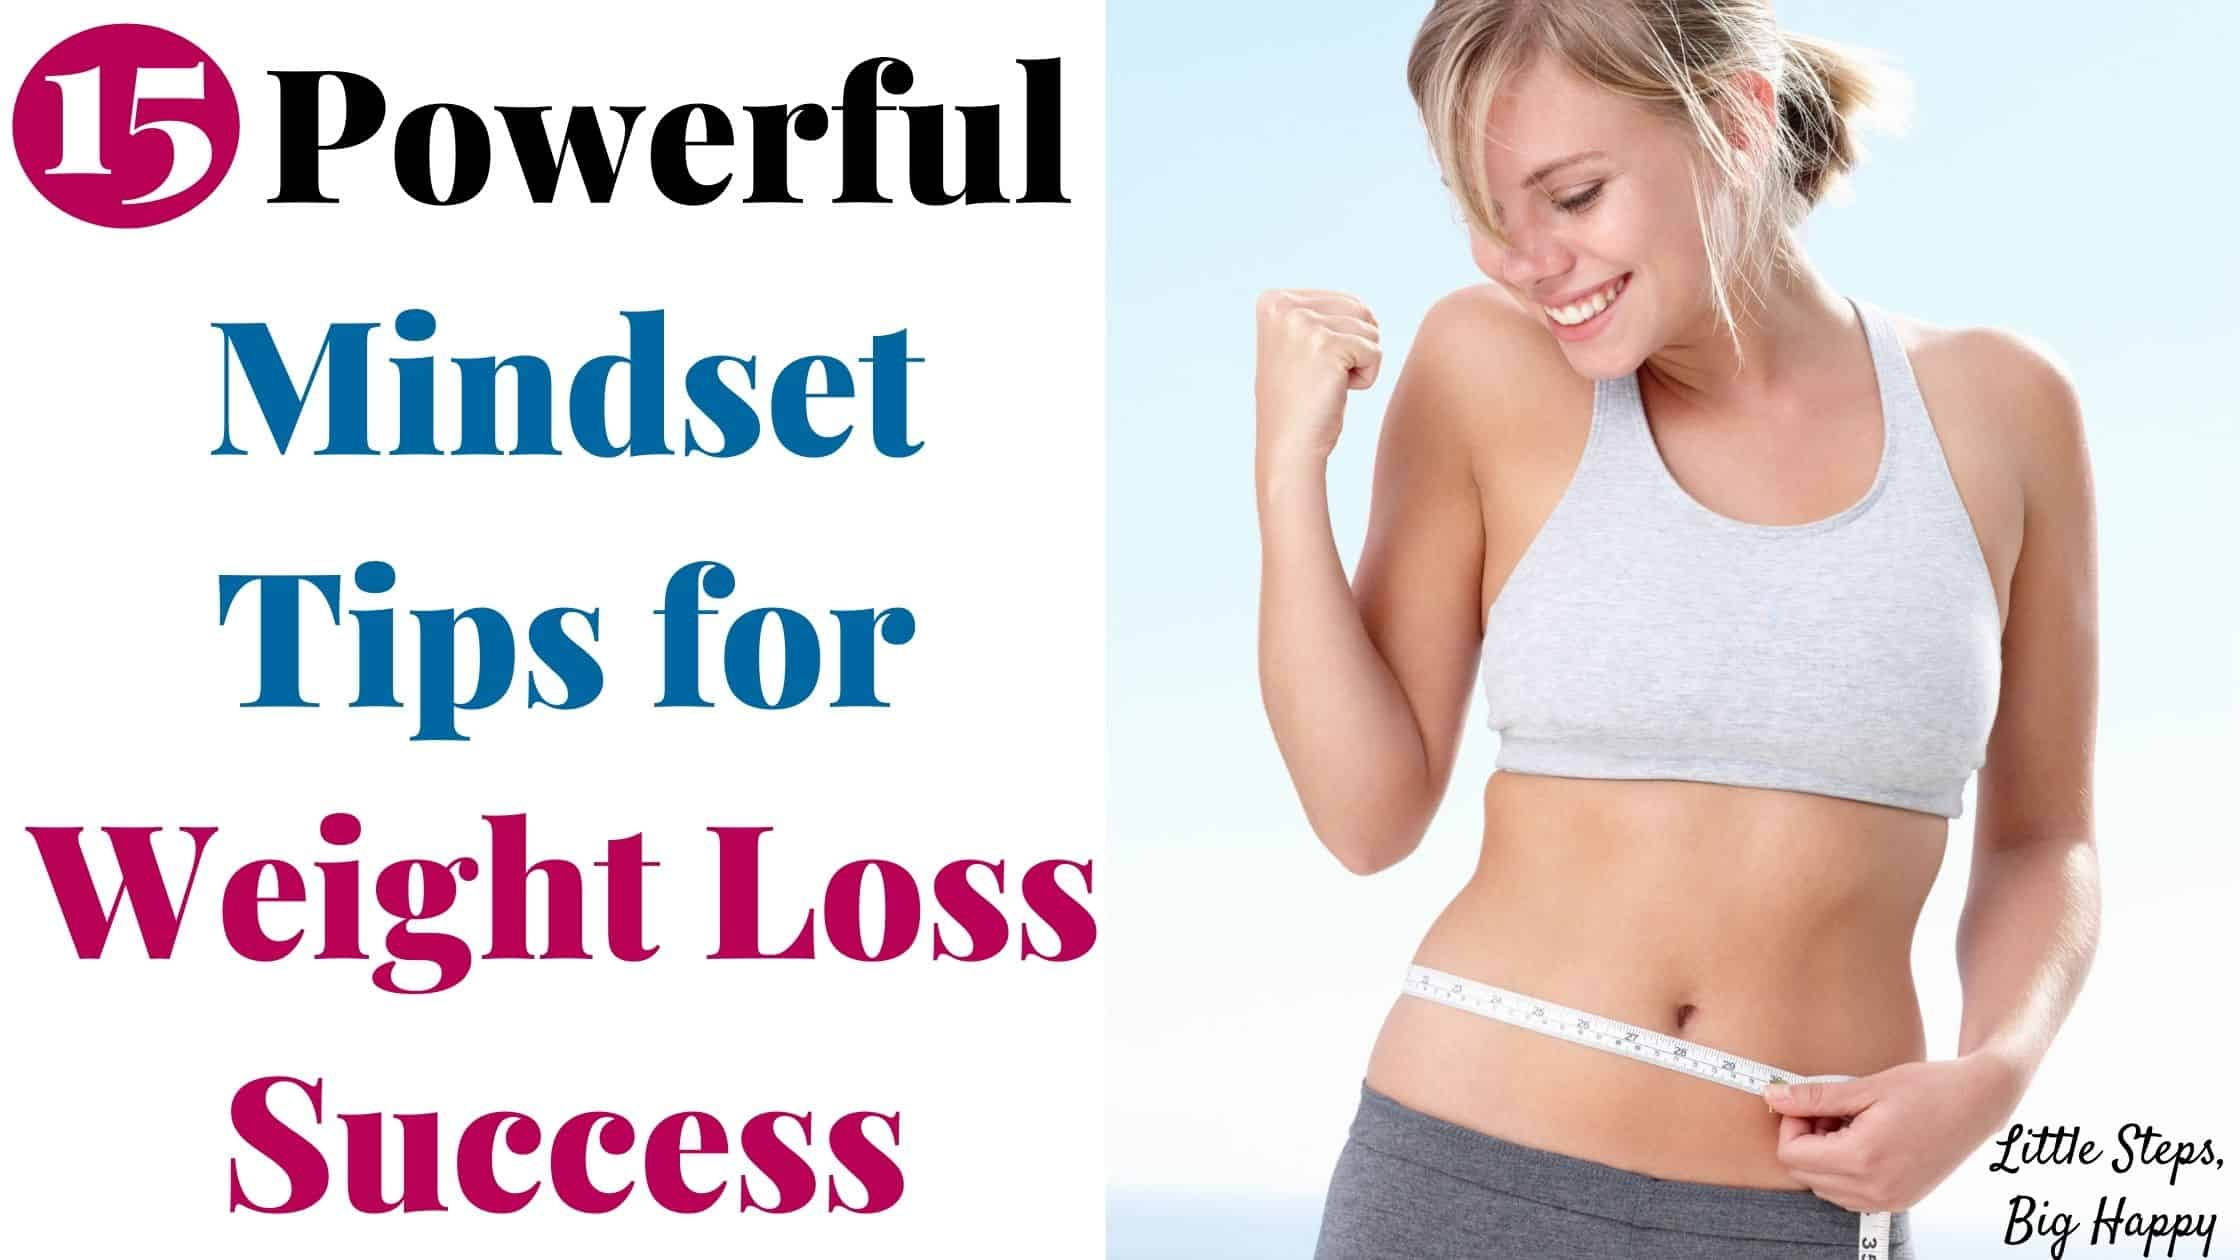 15 Powerful Mindset Tips for Weight Loss Success